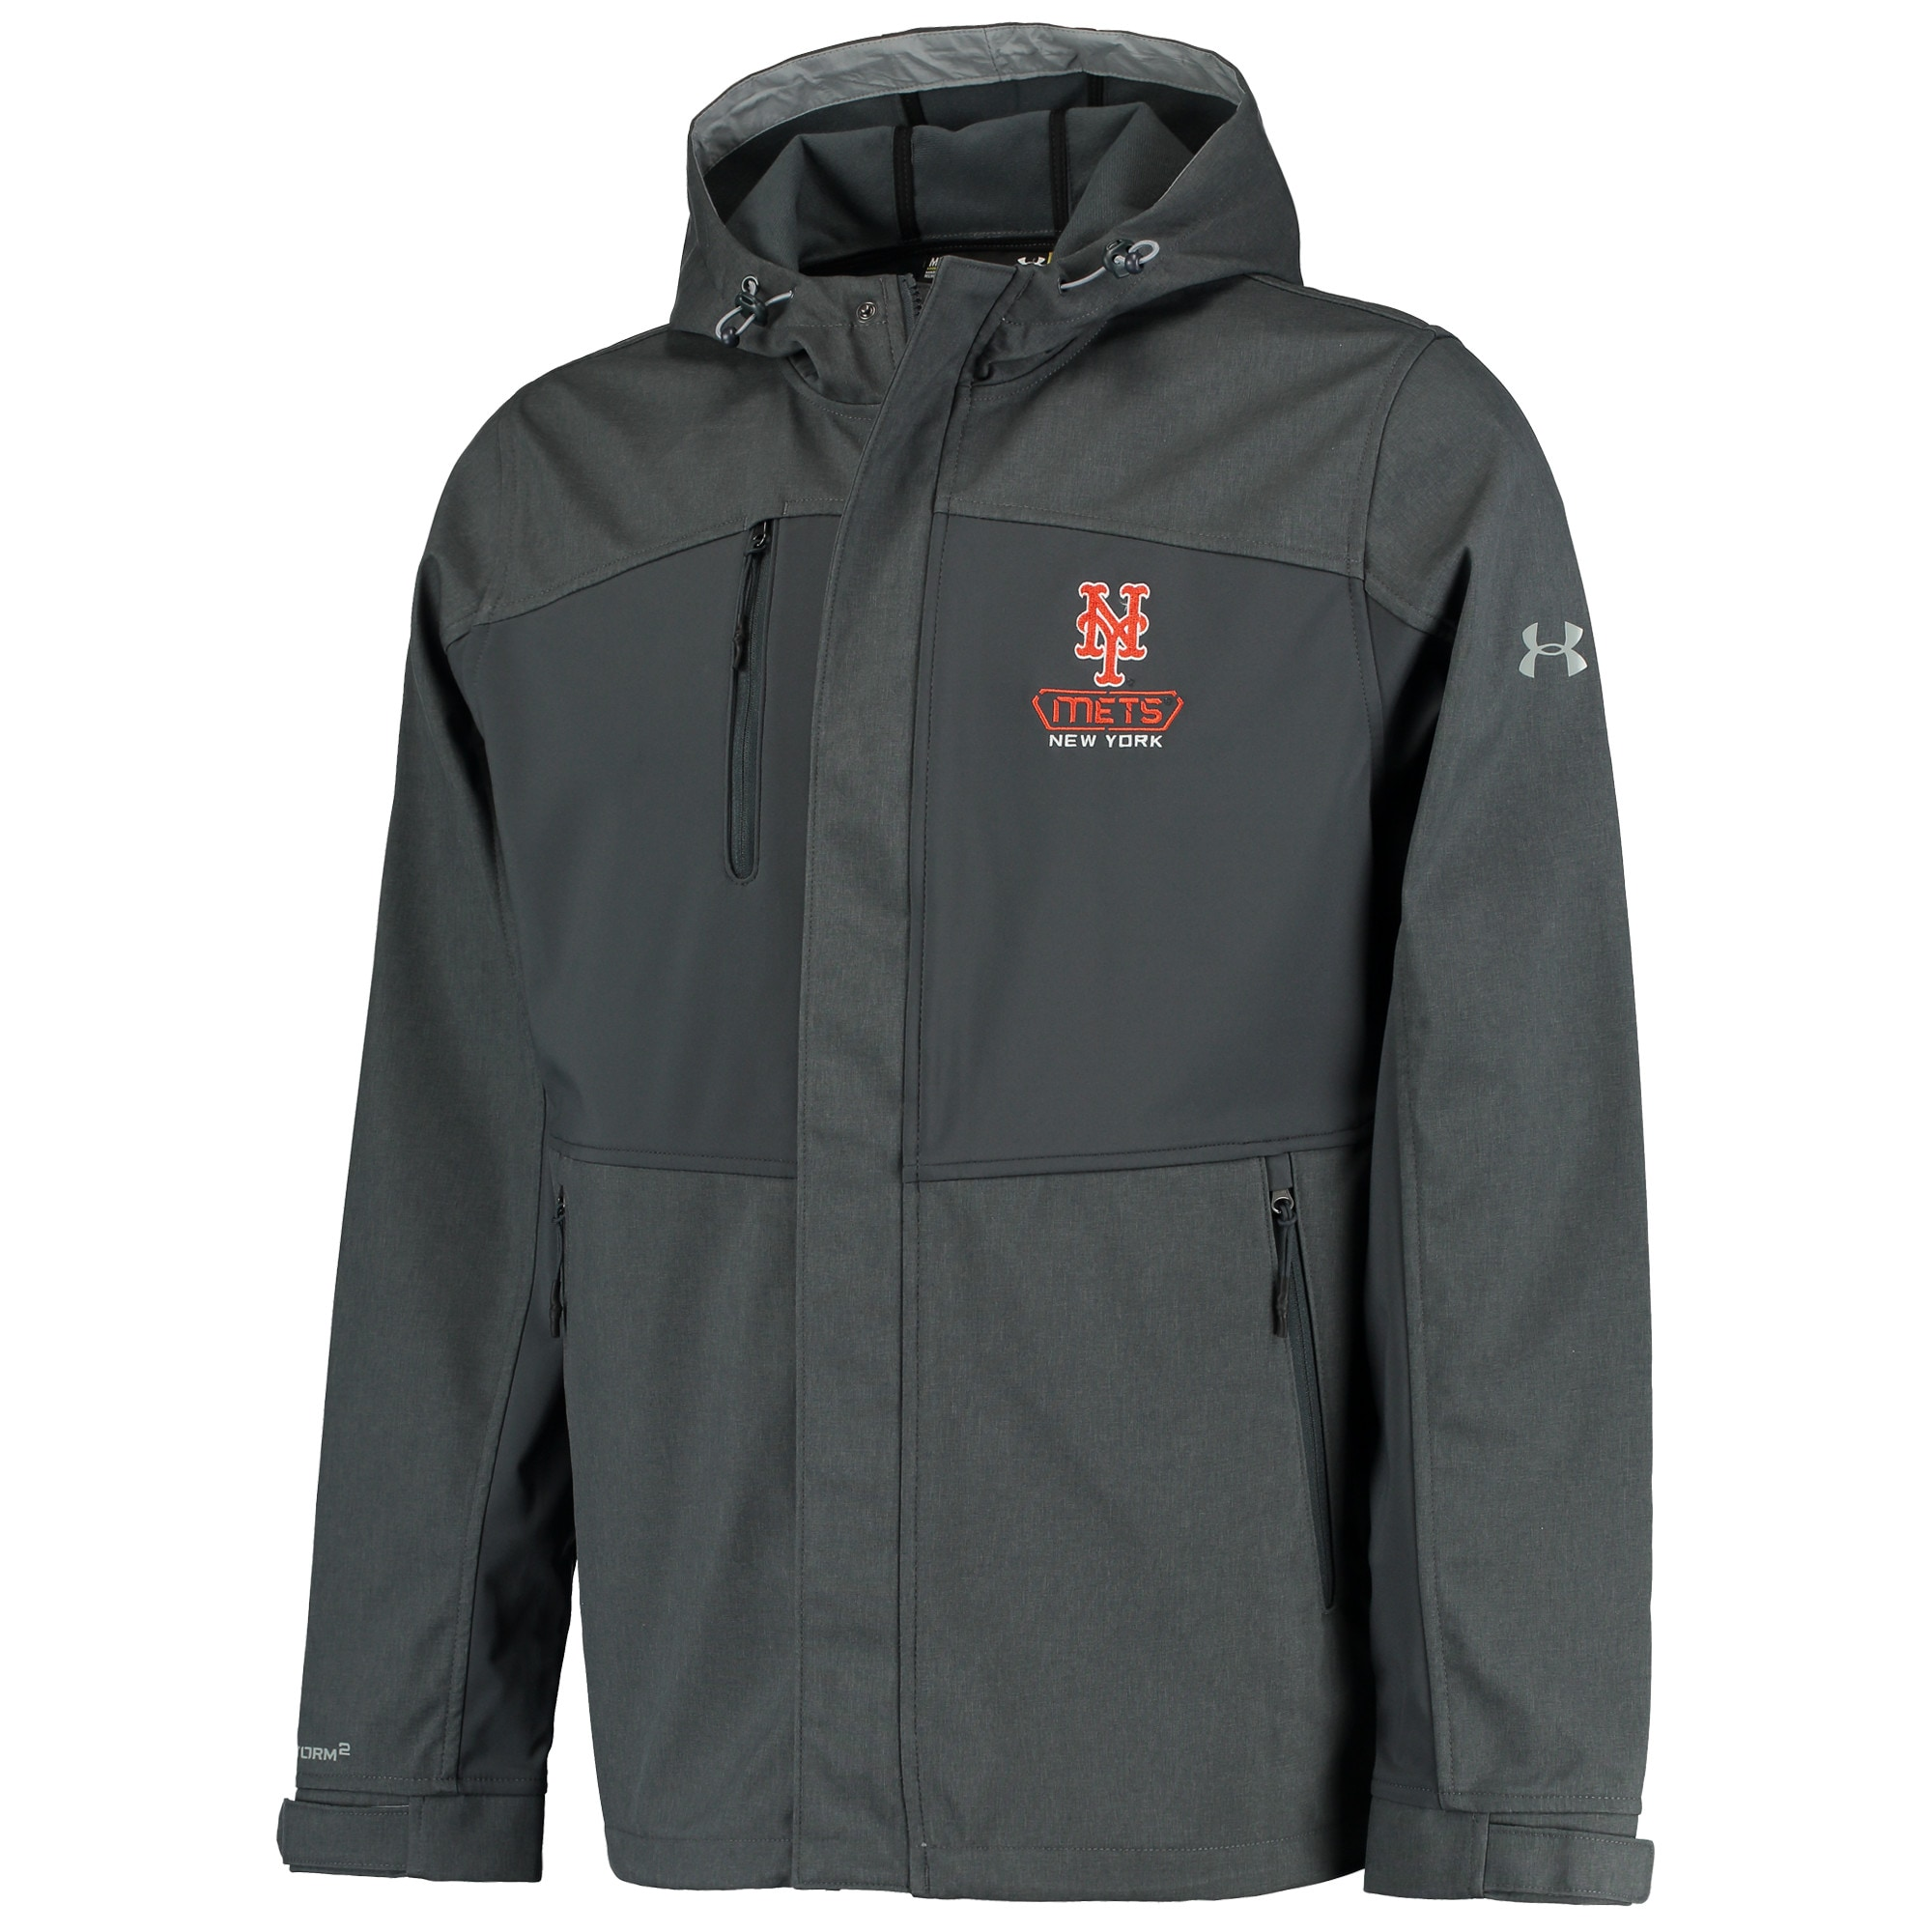 New York Mets Under Armour Mix Softshell Performance Hooded Jacket - Charcoal